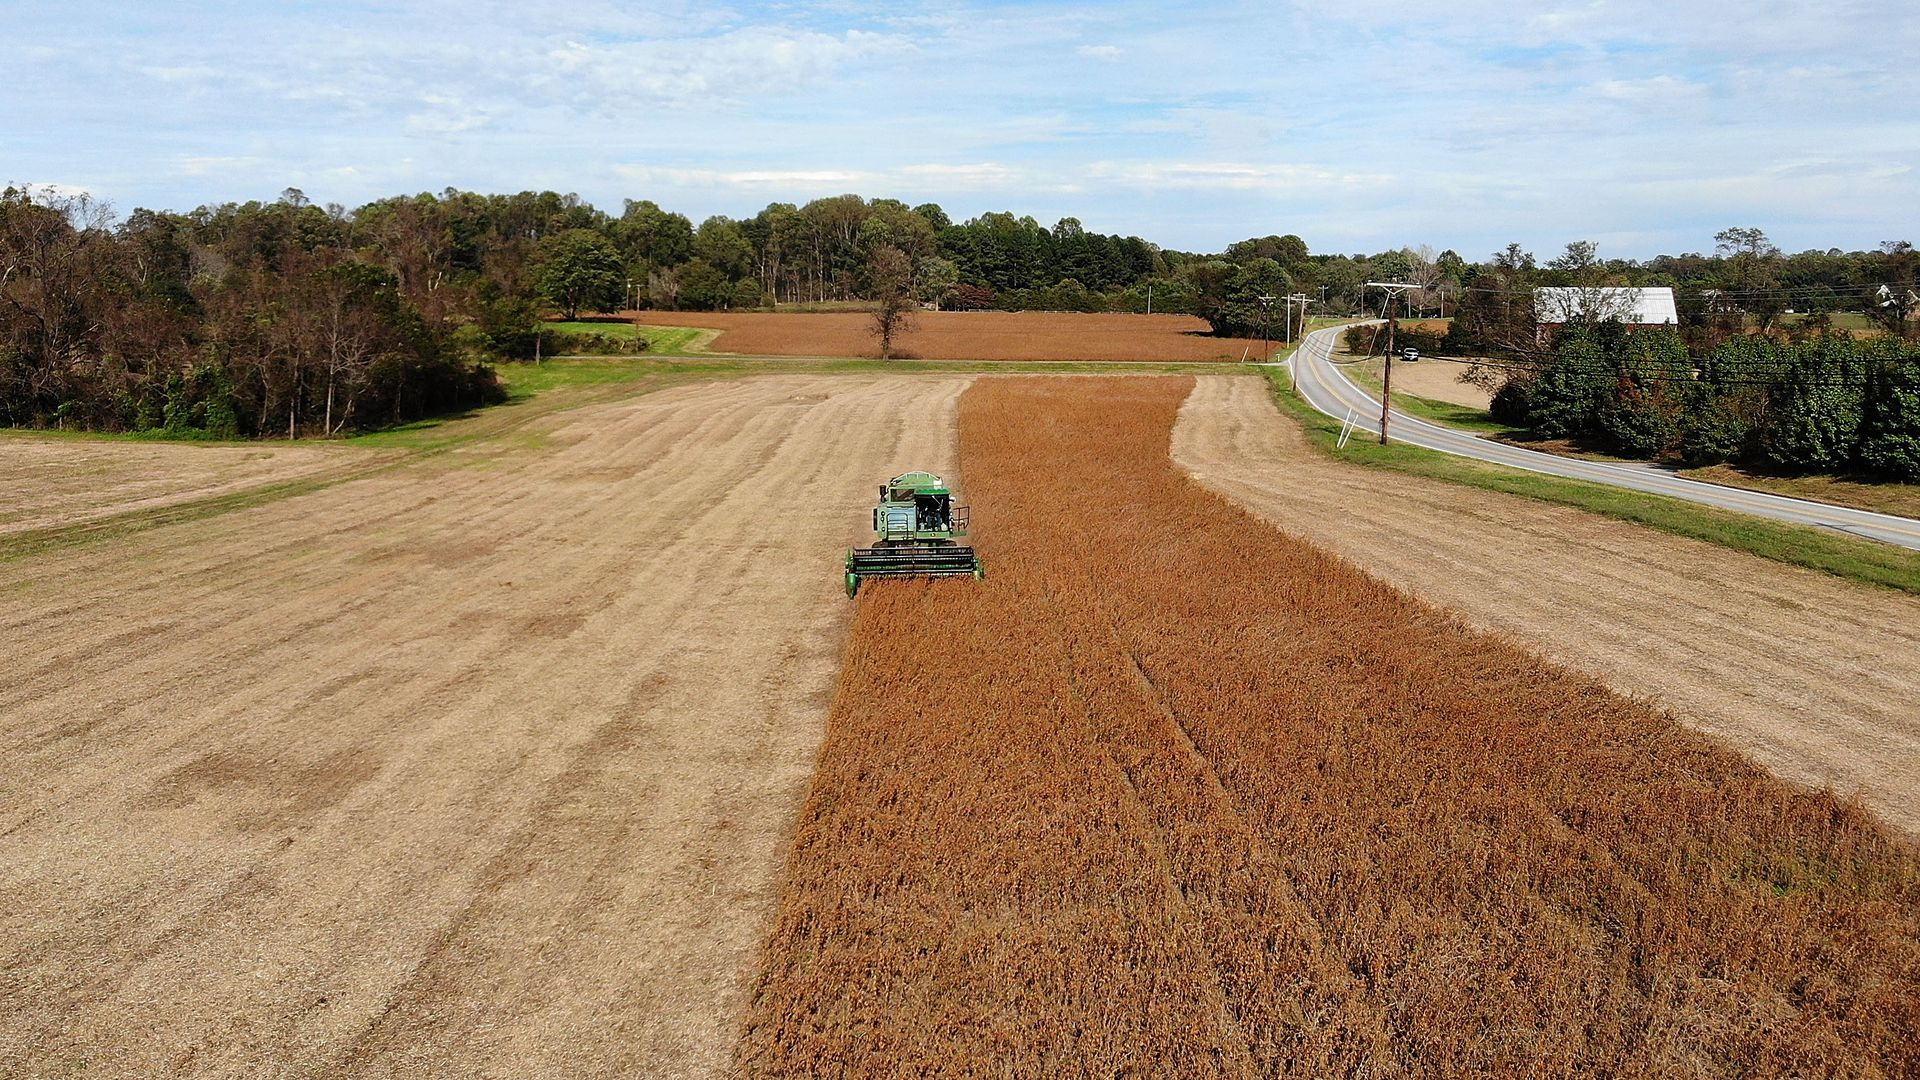 Tractor harvesting soybeans